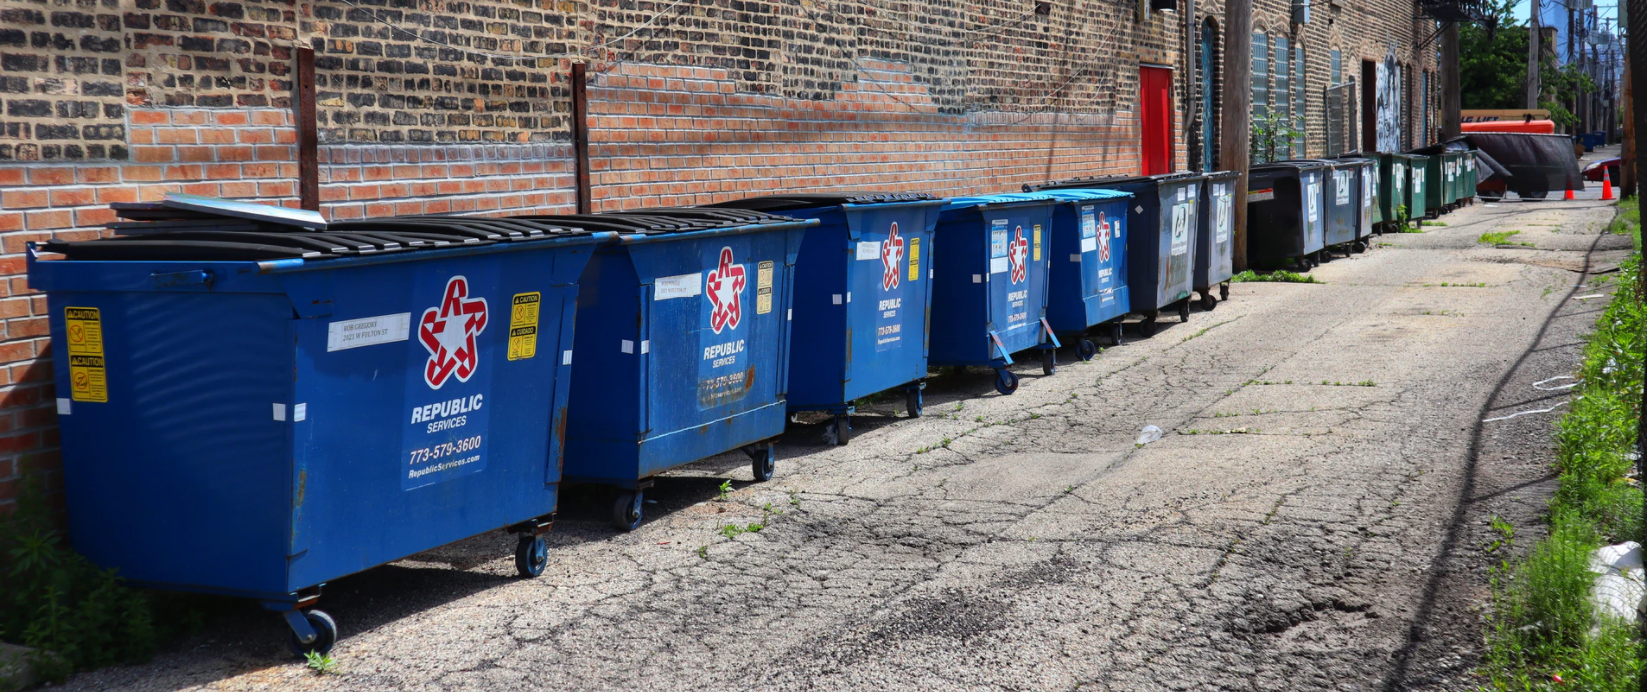 15.4 million tons of recyclables are collected annually